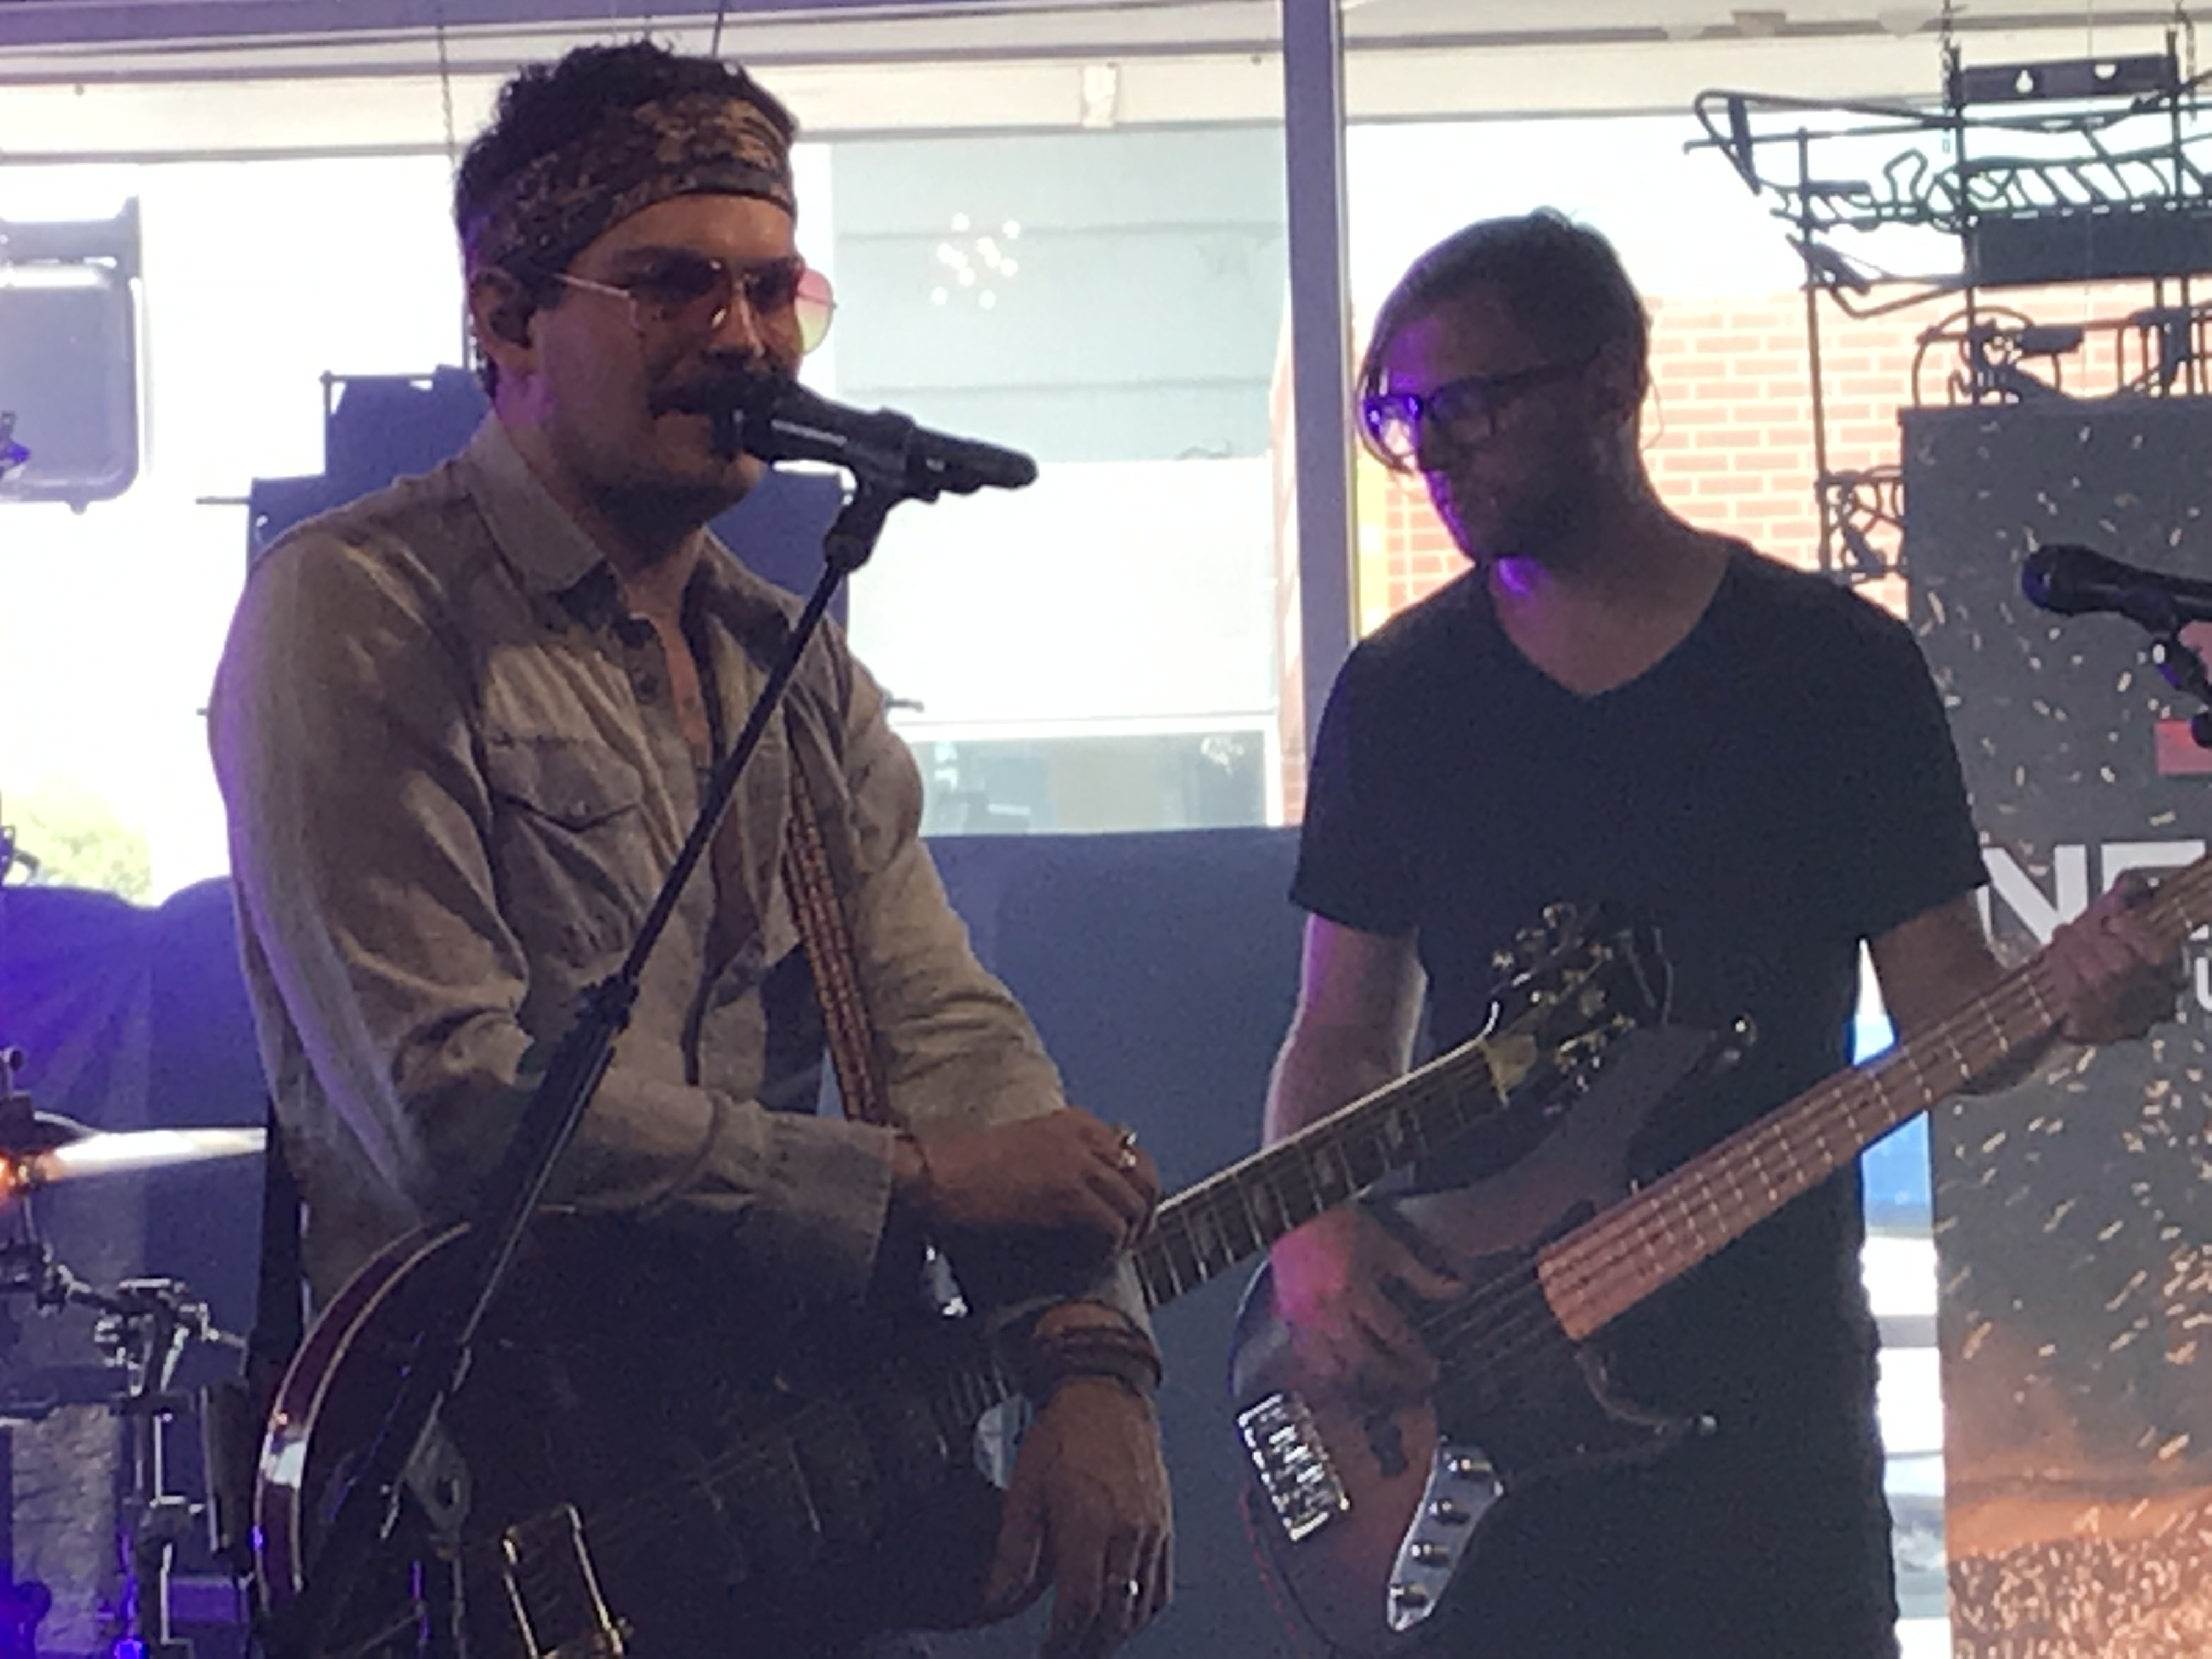 Paradisa at The Bar on the Avenue | Mile of Music: Mile 7 | Aug 4th, 2019 | Appleton, WI (WCWF/Jeff Bartel)